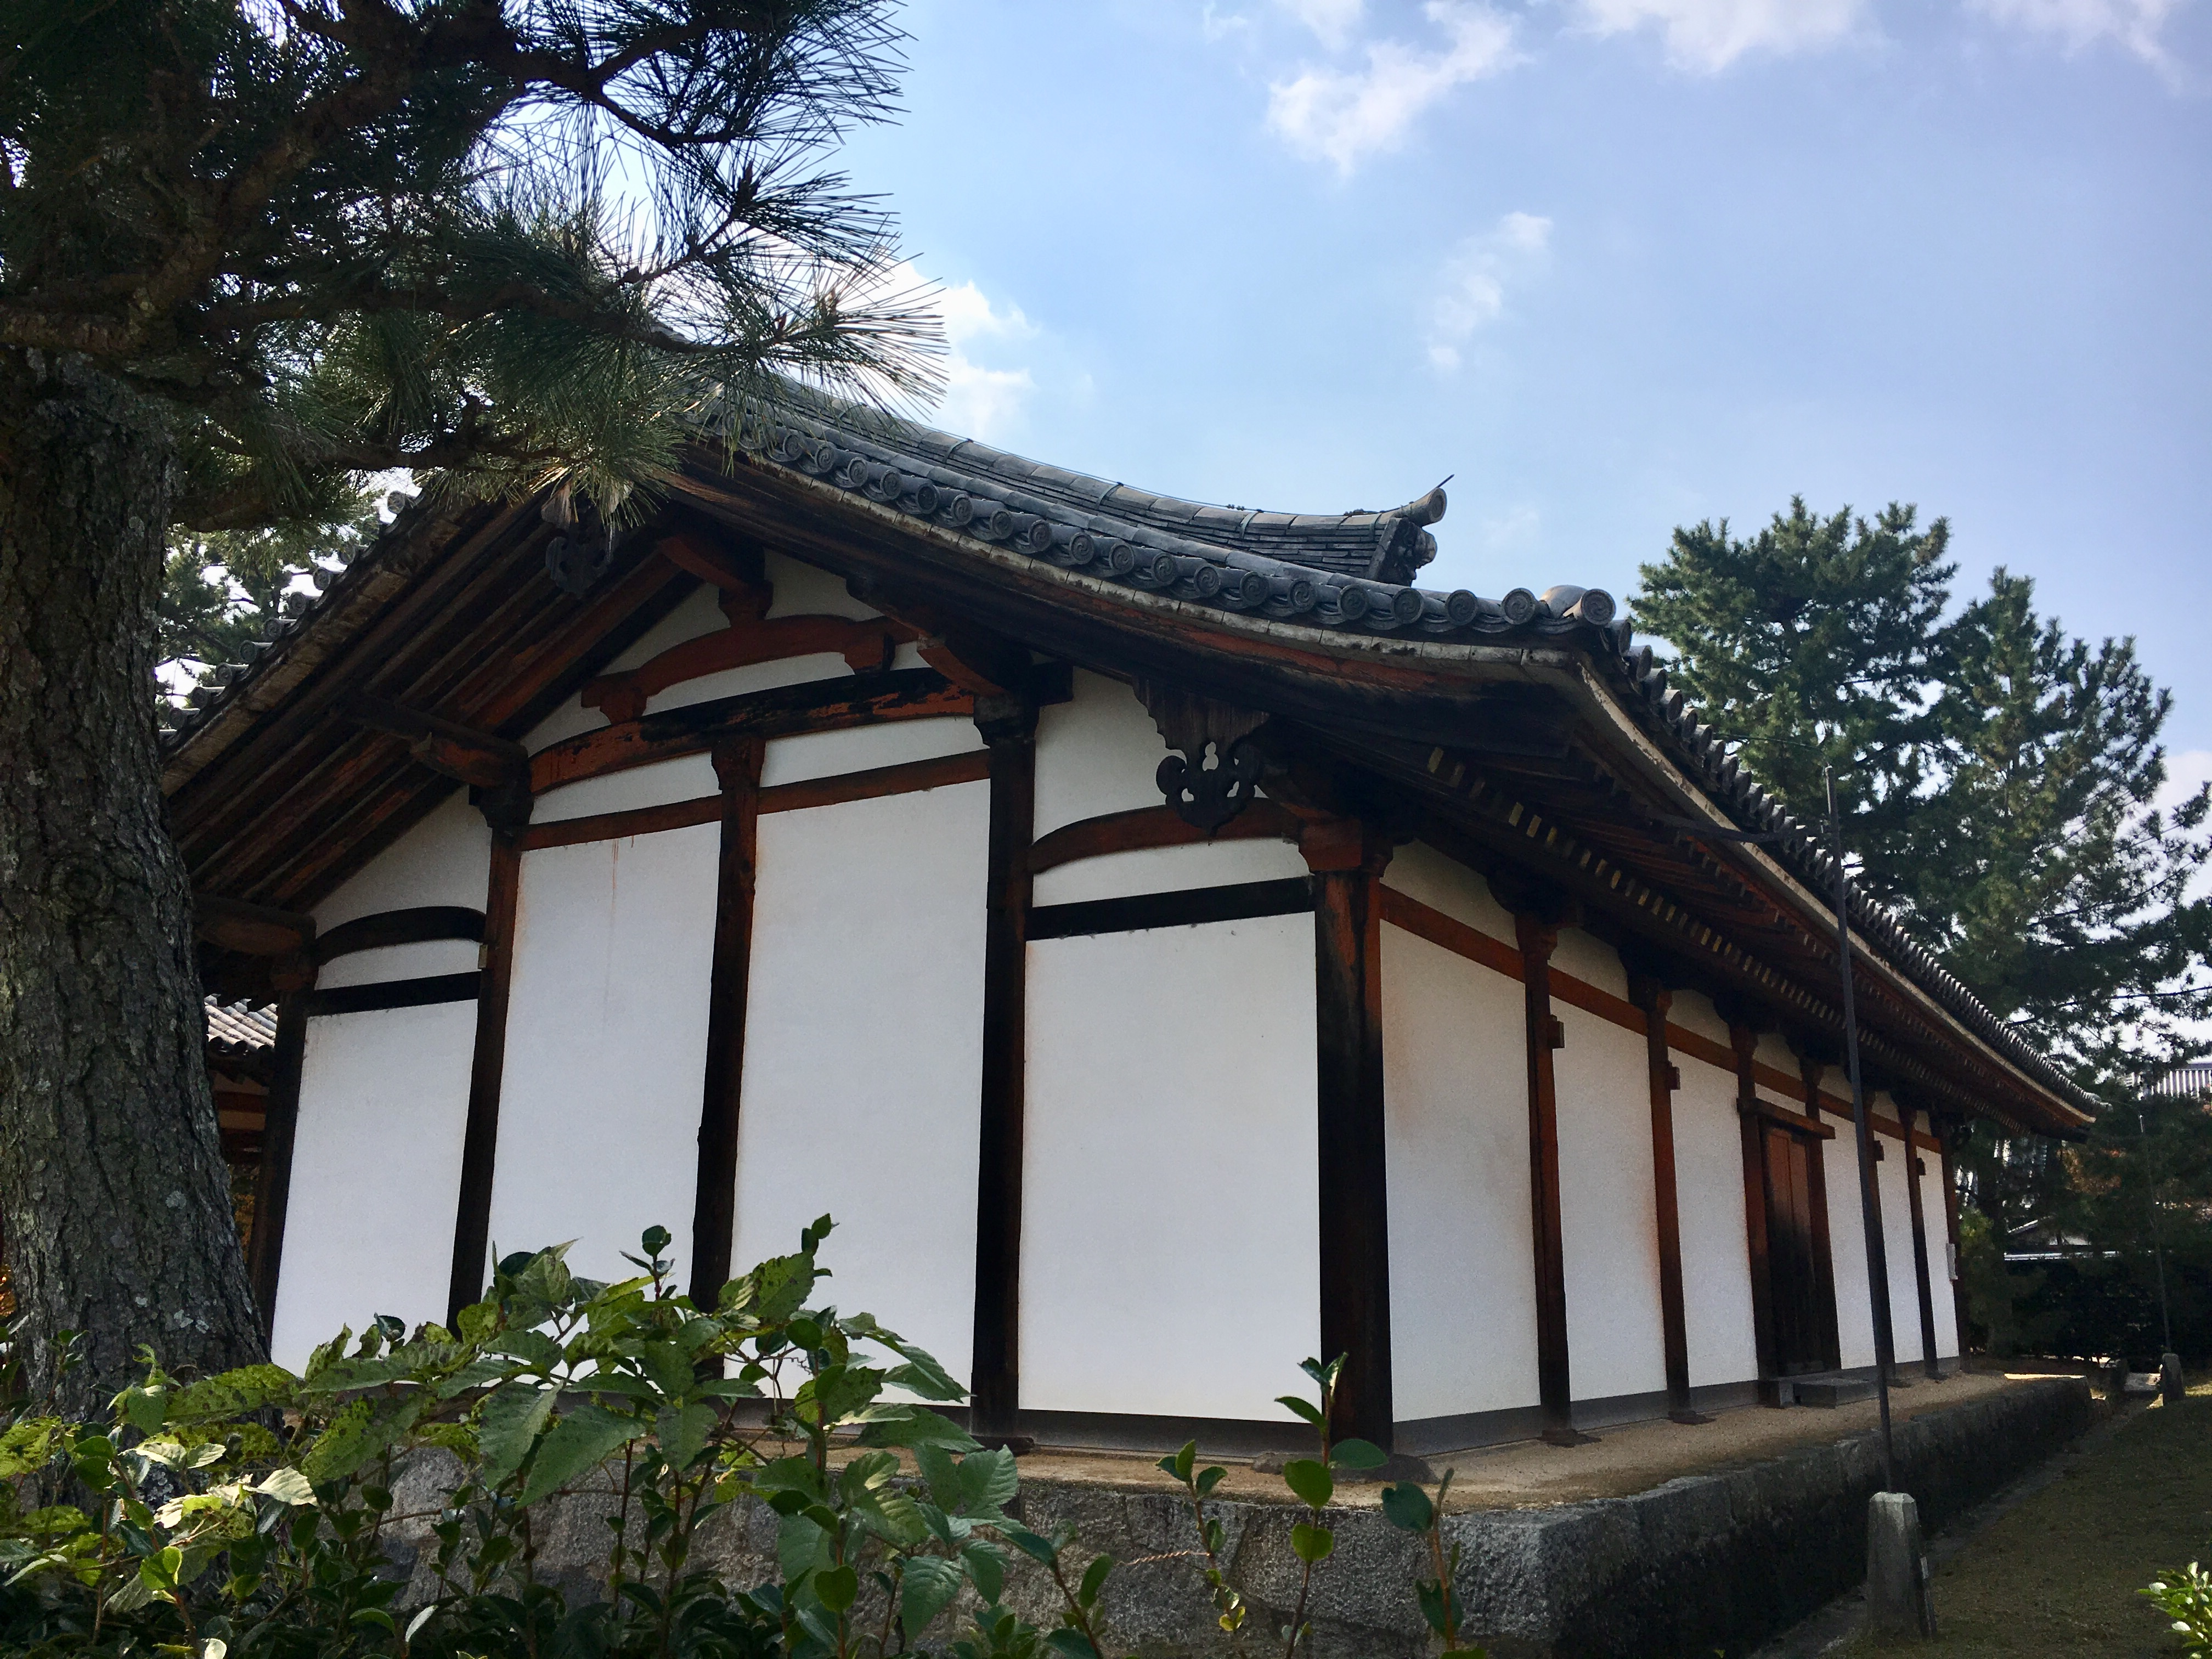 Jikido, an old cafeteria building at Horyu-ji temple